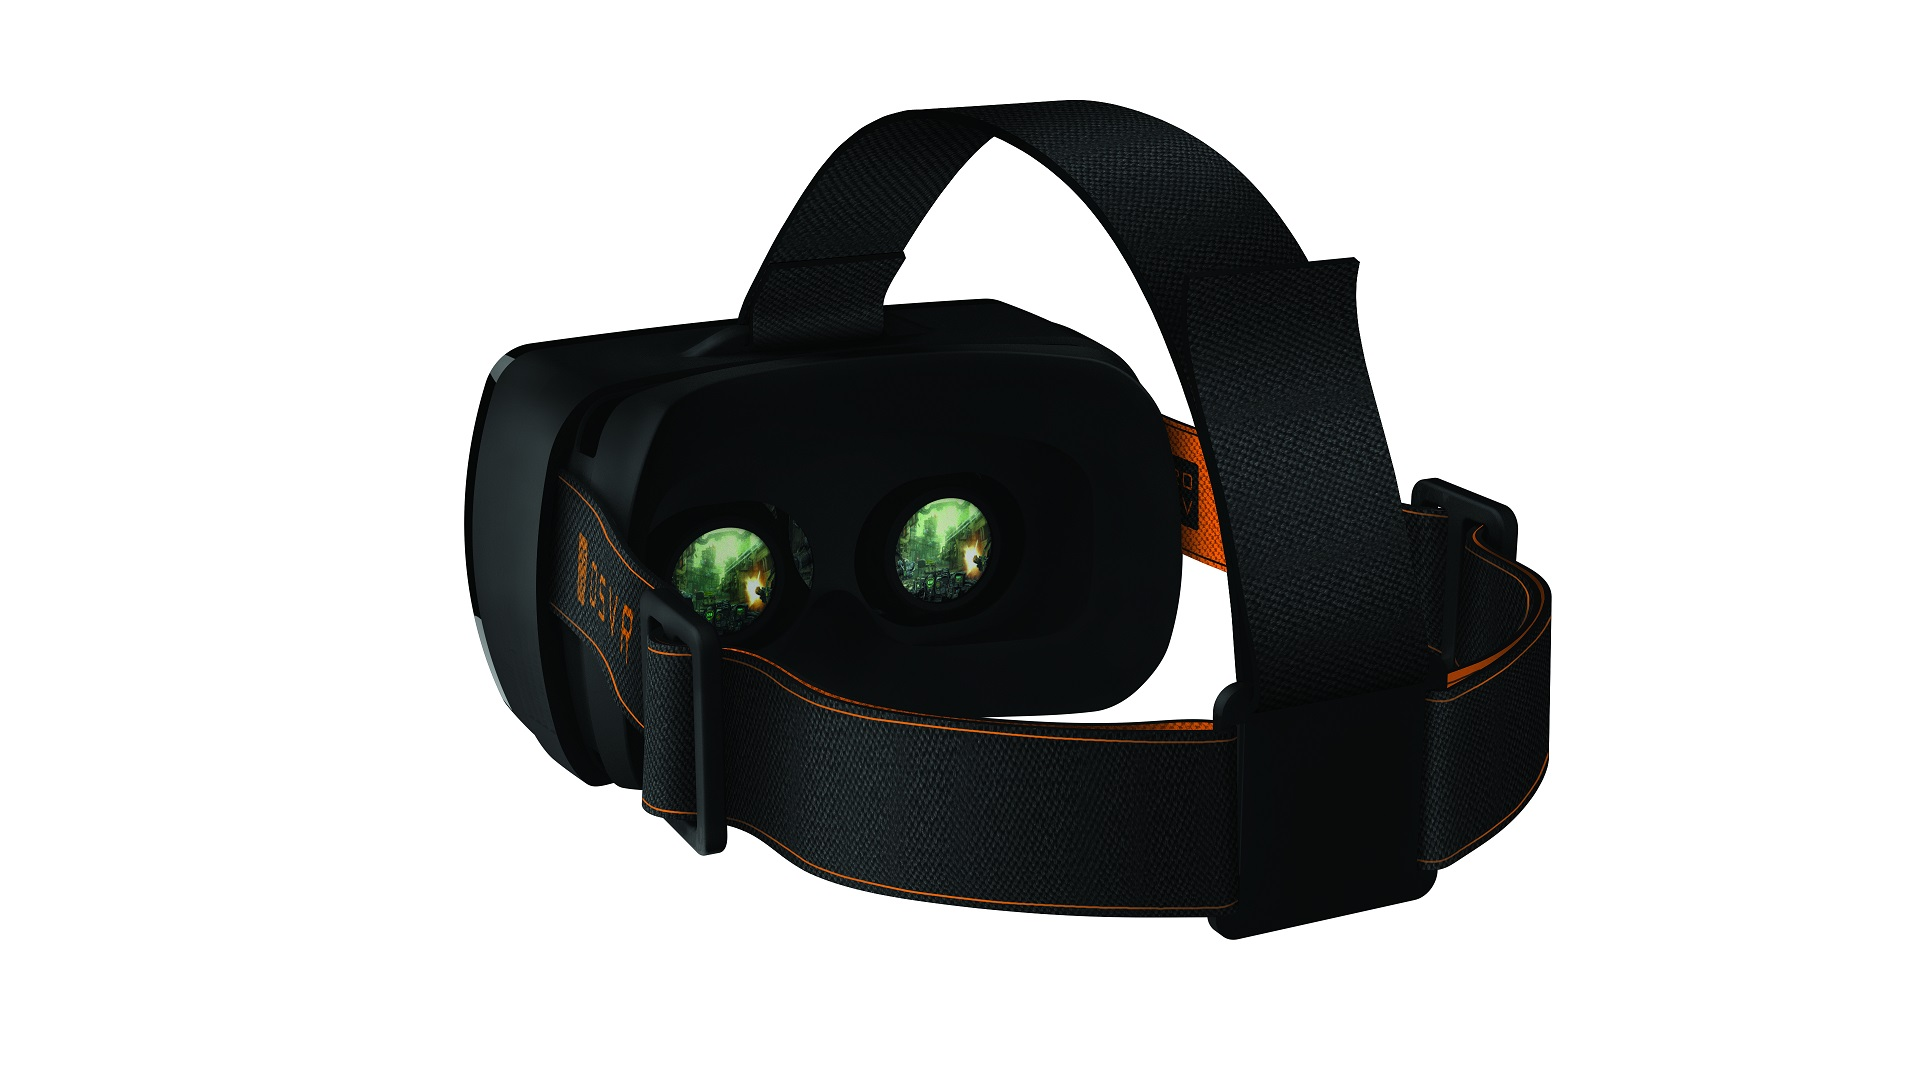 Razer Announce VR Headset